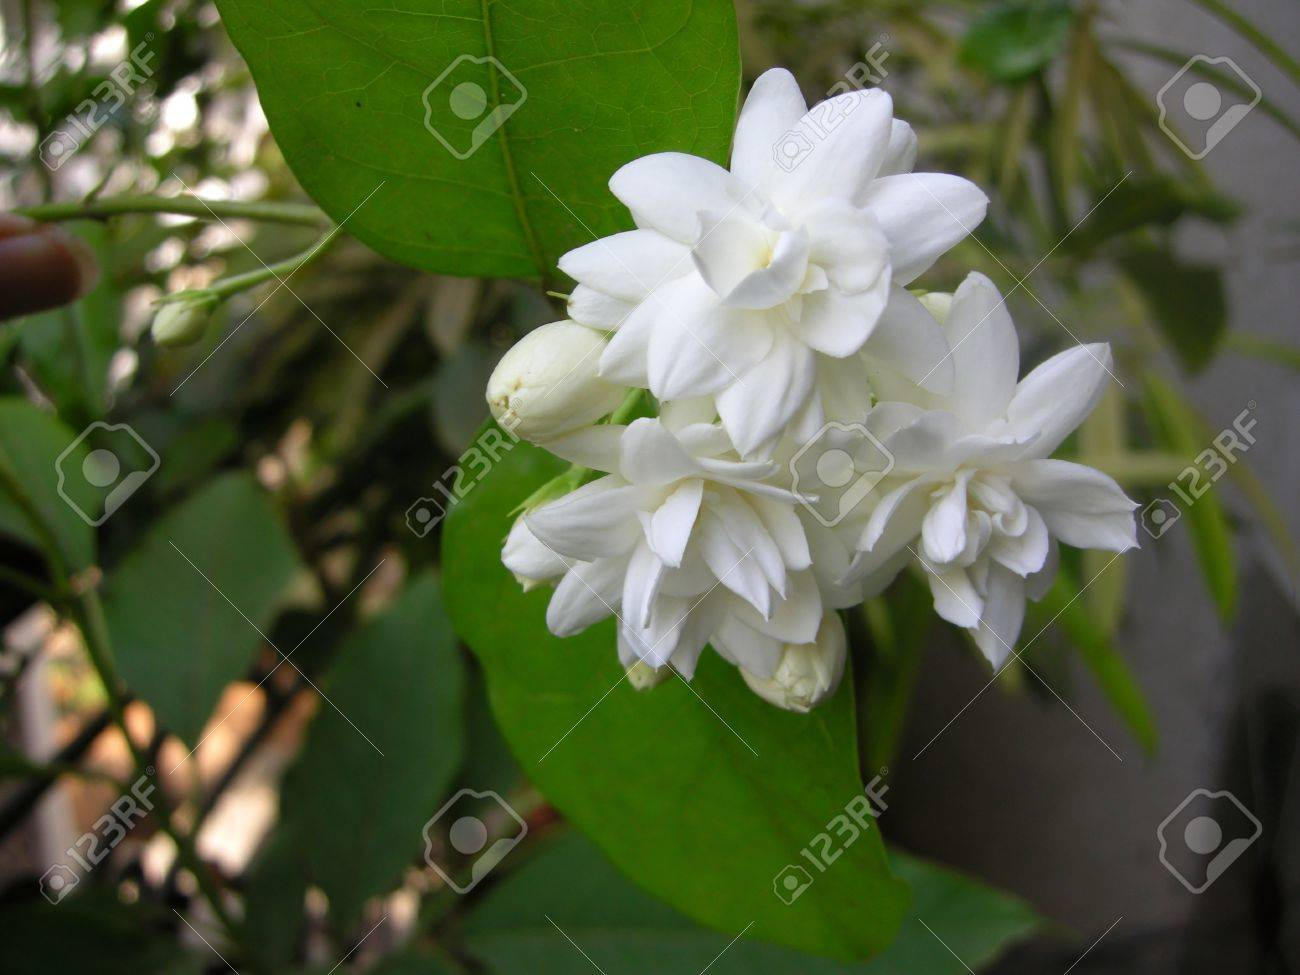 mogra is a beautiful fragrant white flower from jasmine family, Natural flower